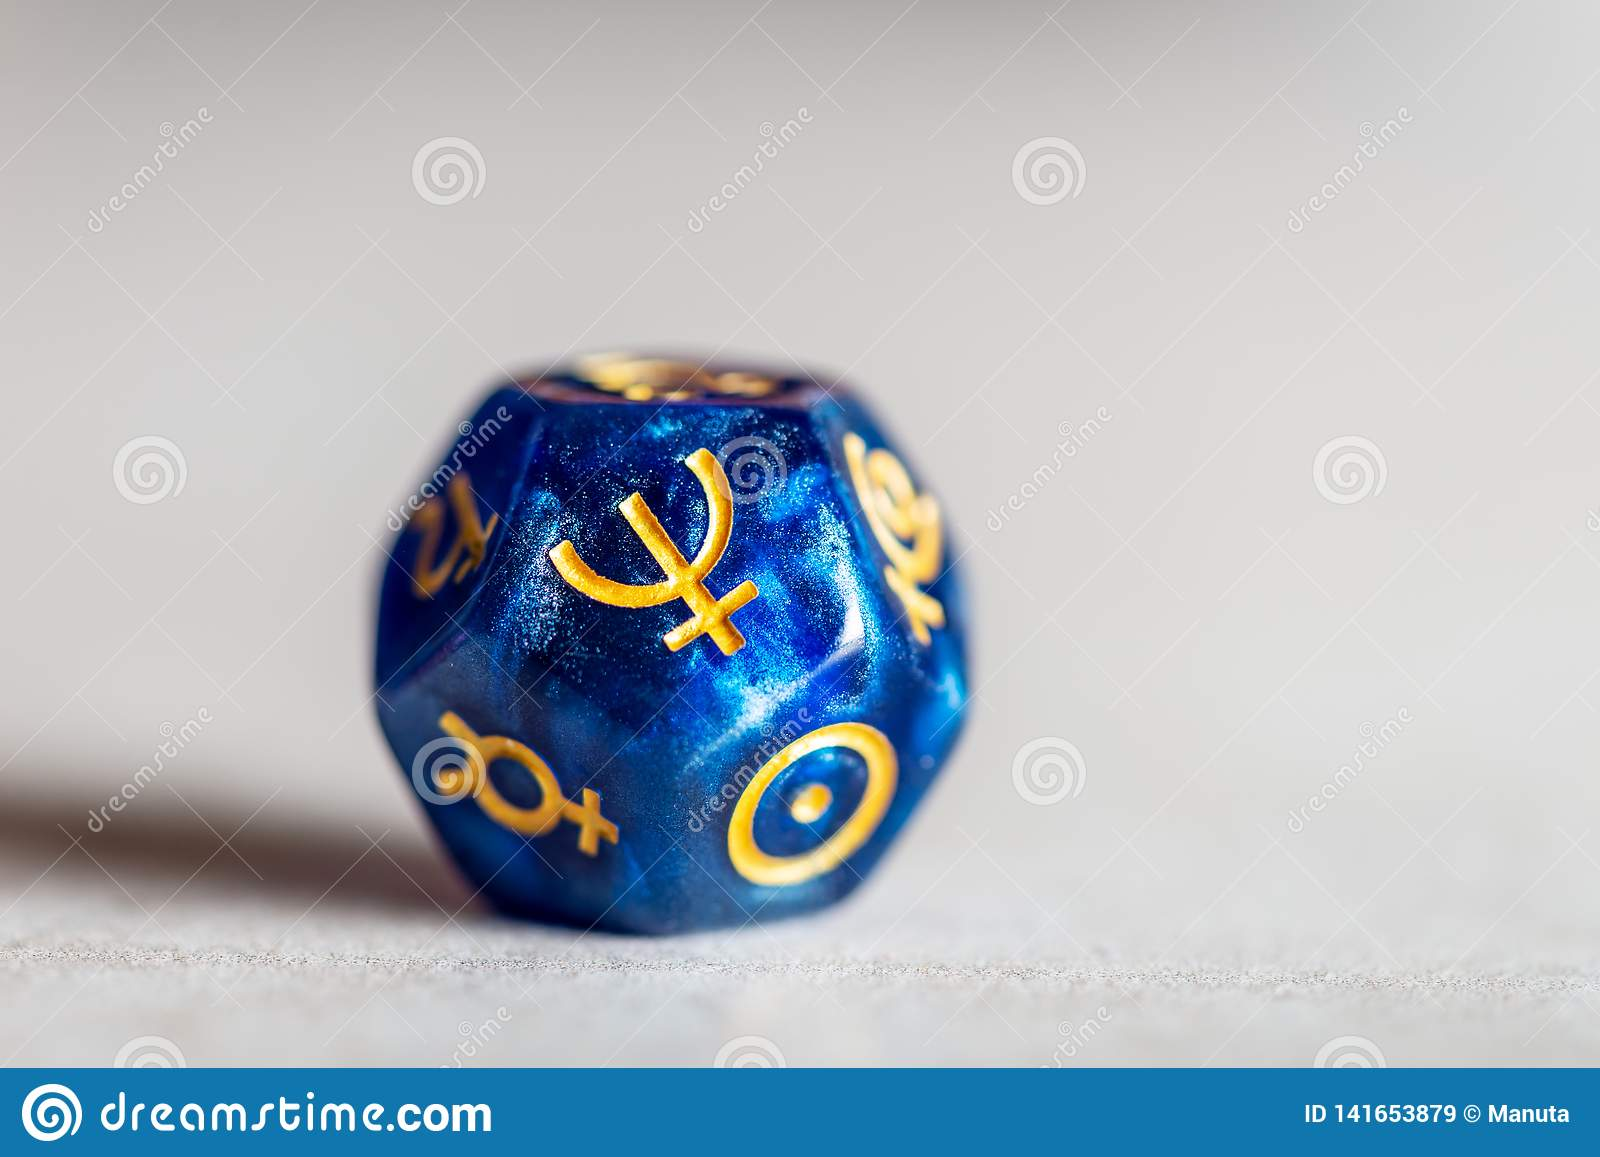 Astrology Dice with symbol of the planet Neptune